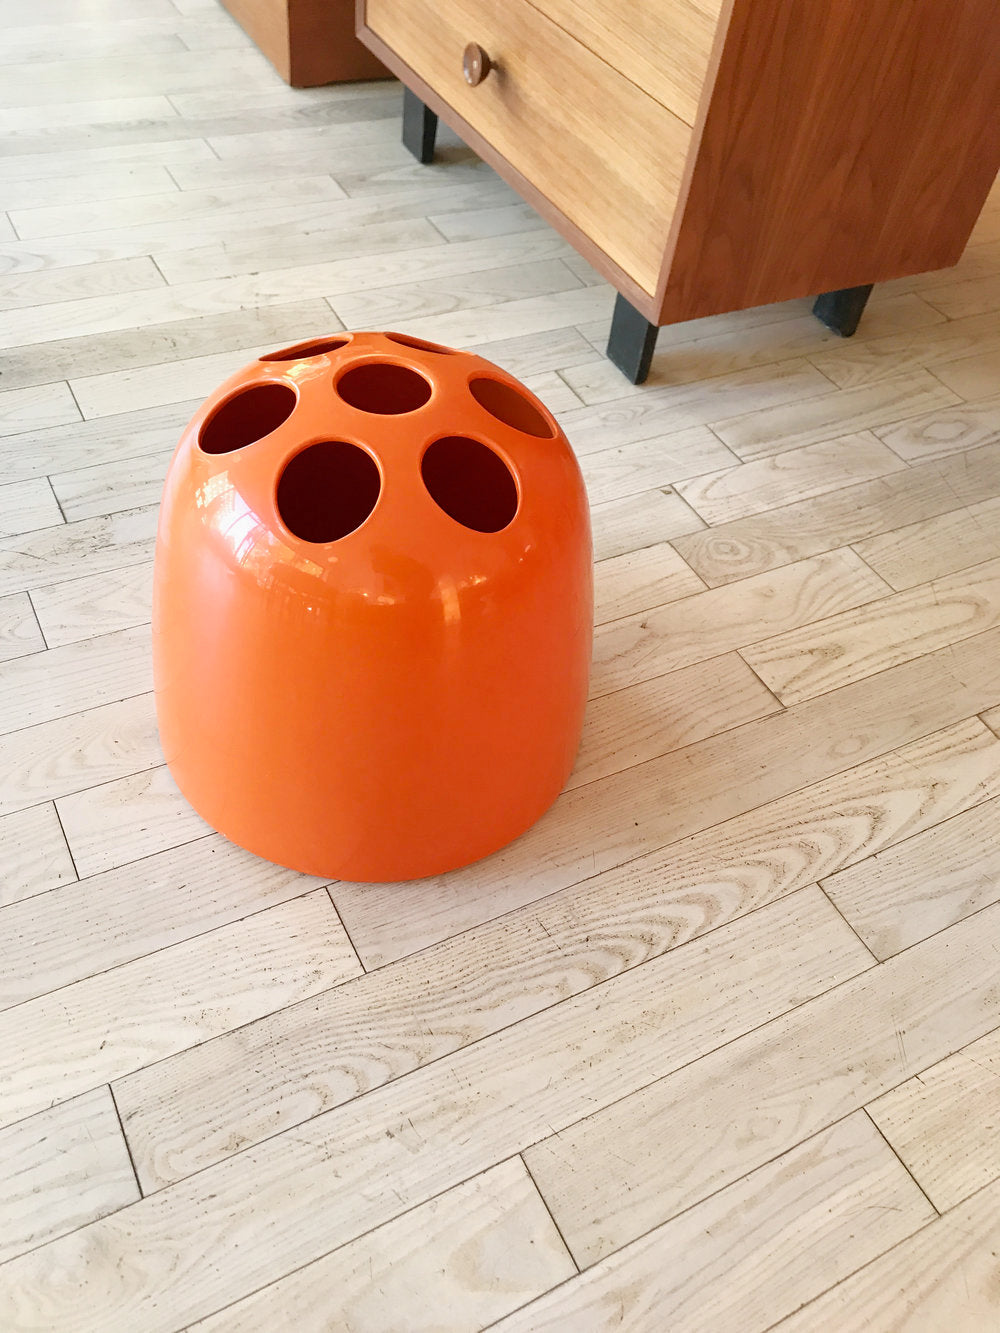 1966 Dedalo Orange Plastic Umbrella Stand by Emma Gismondi for Artemide